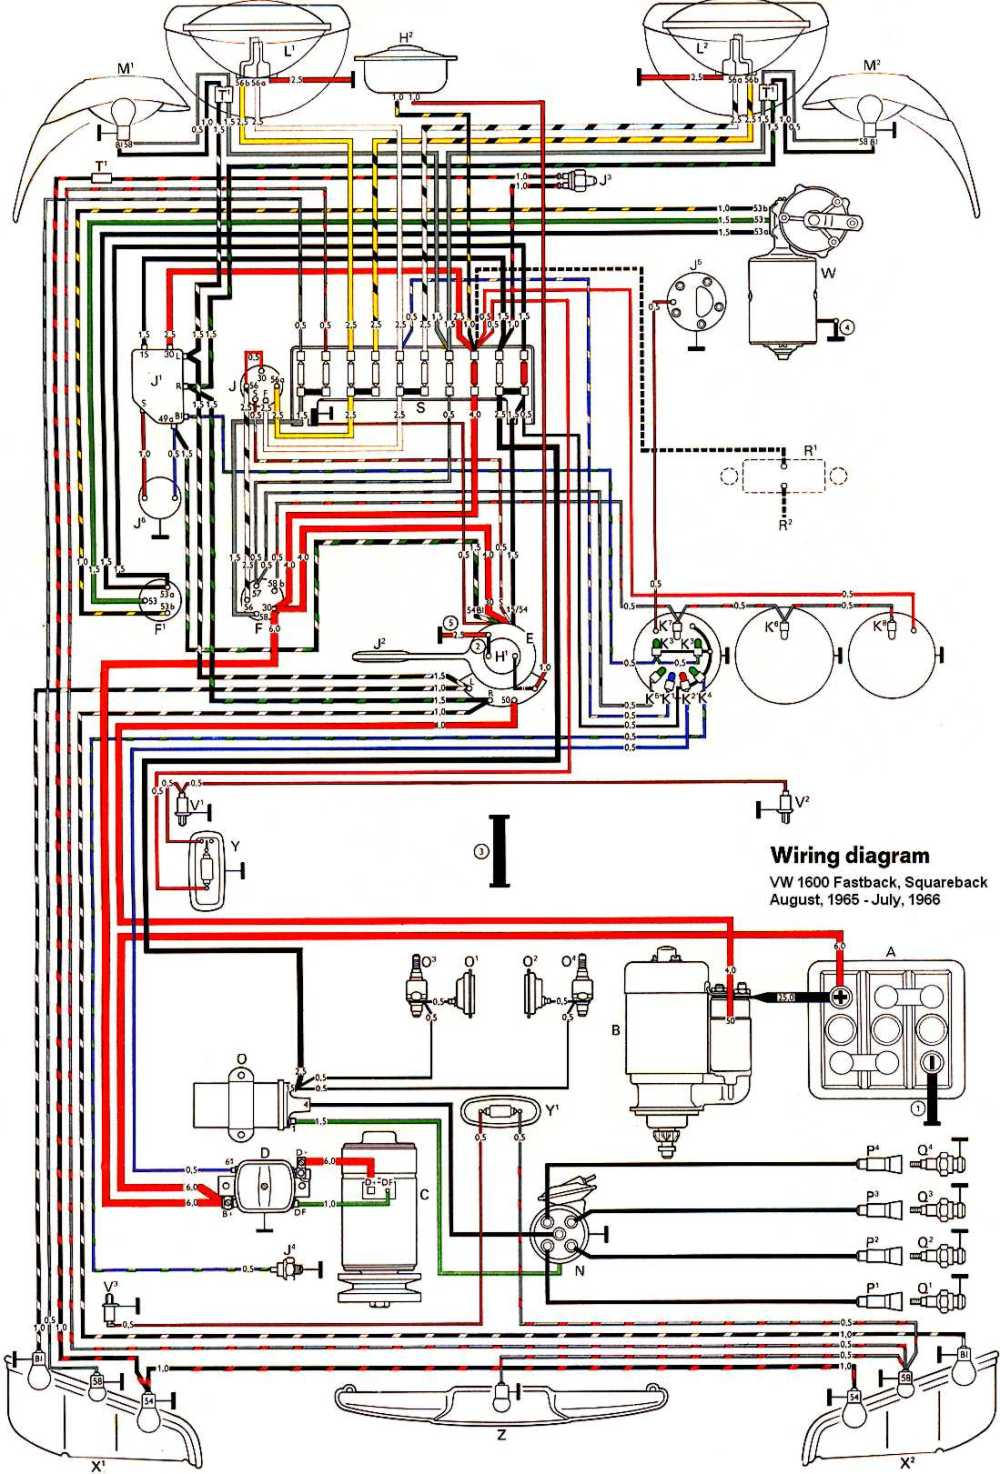 medium resolution of 2001 vw beetle wiring wiring diagram portal wire loom 1965 vw beetle wiring free wiring diagram